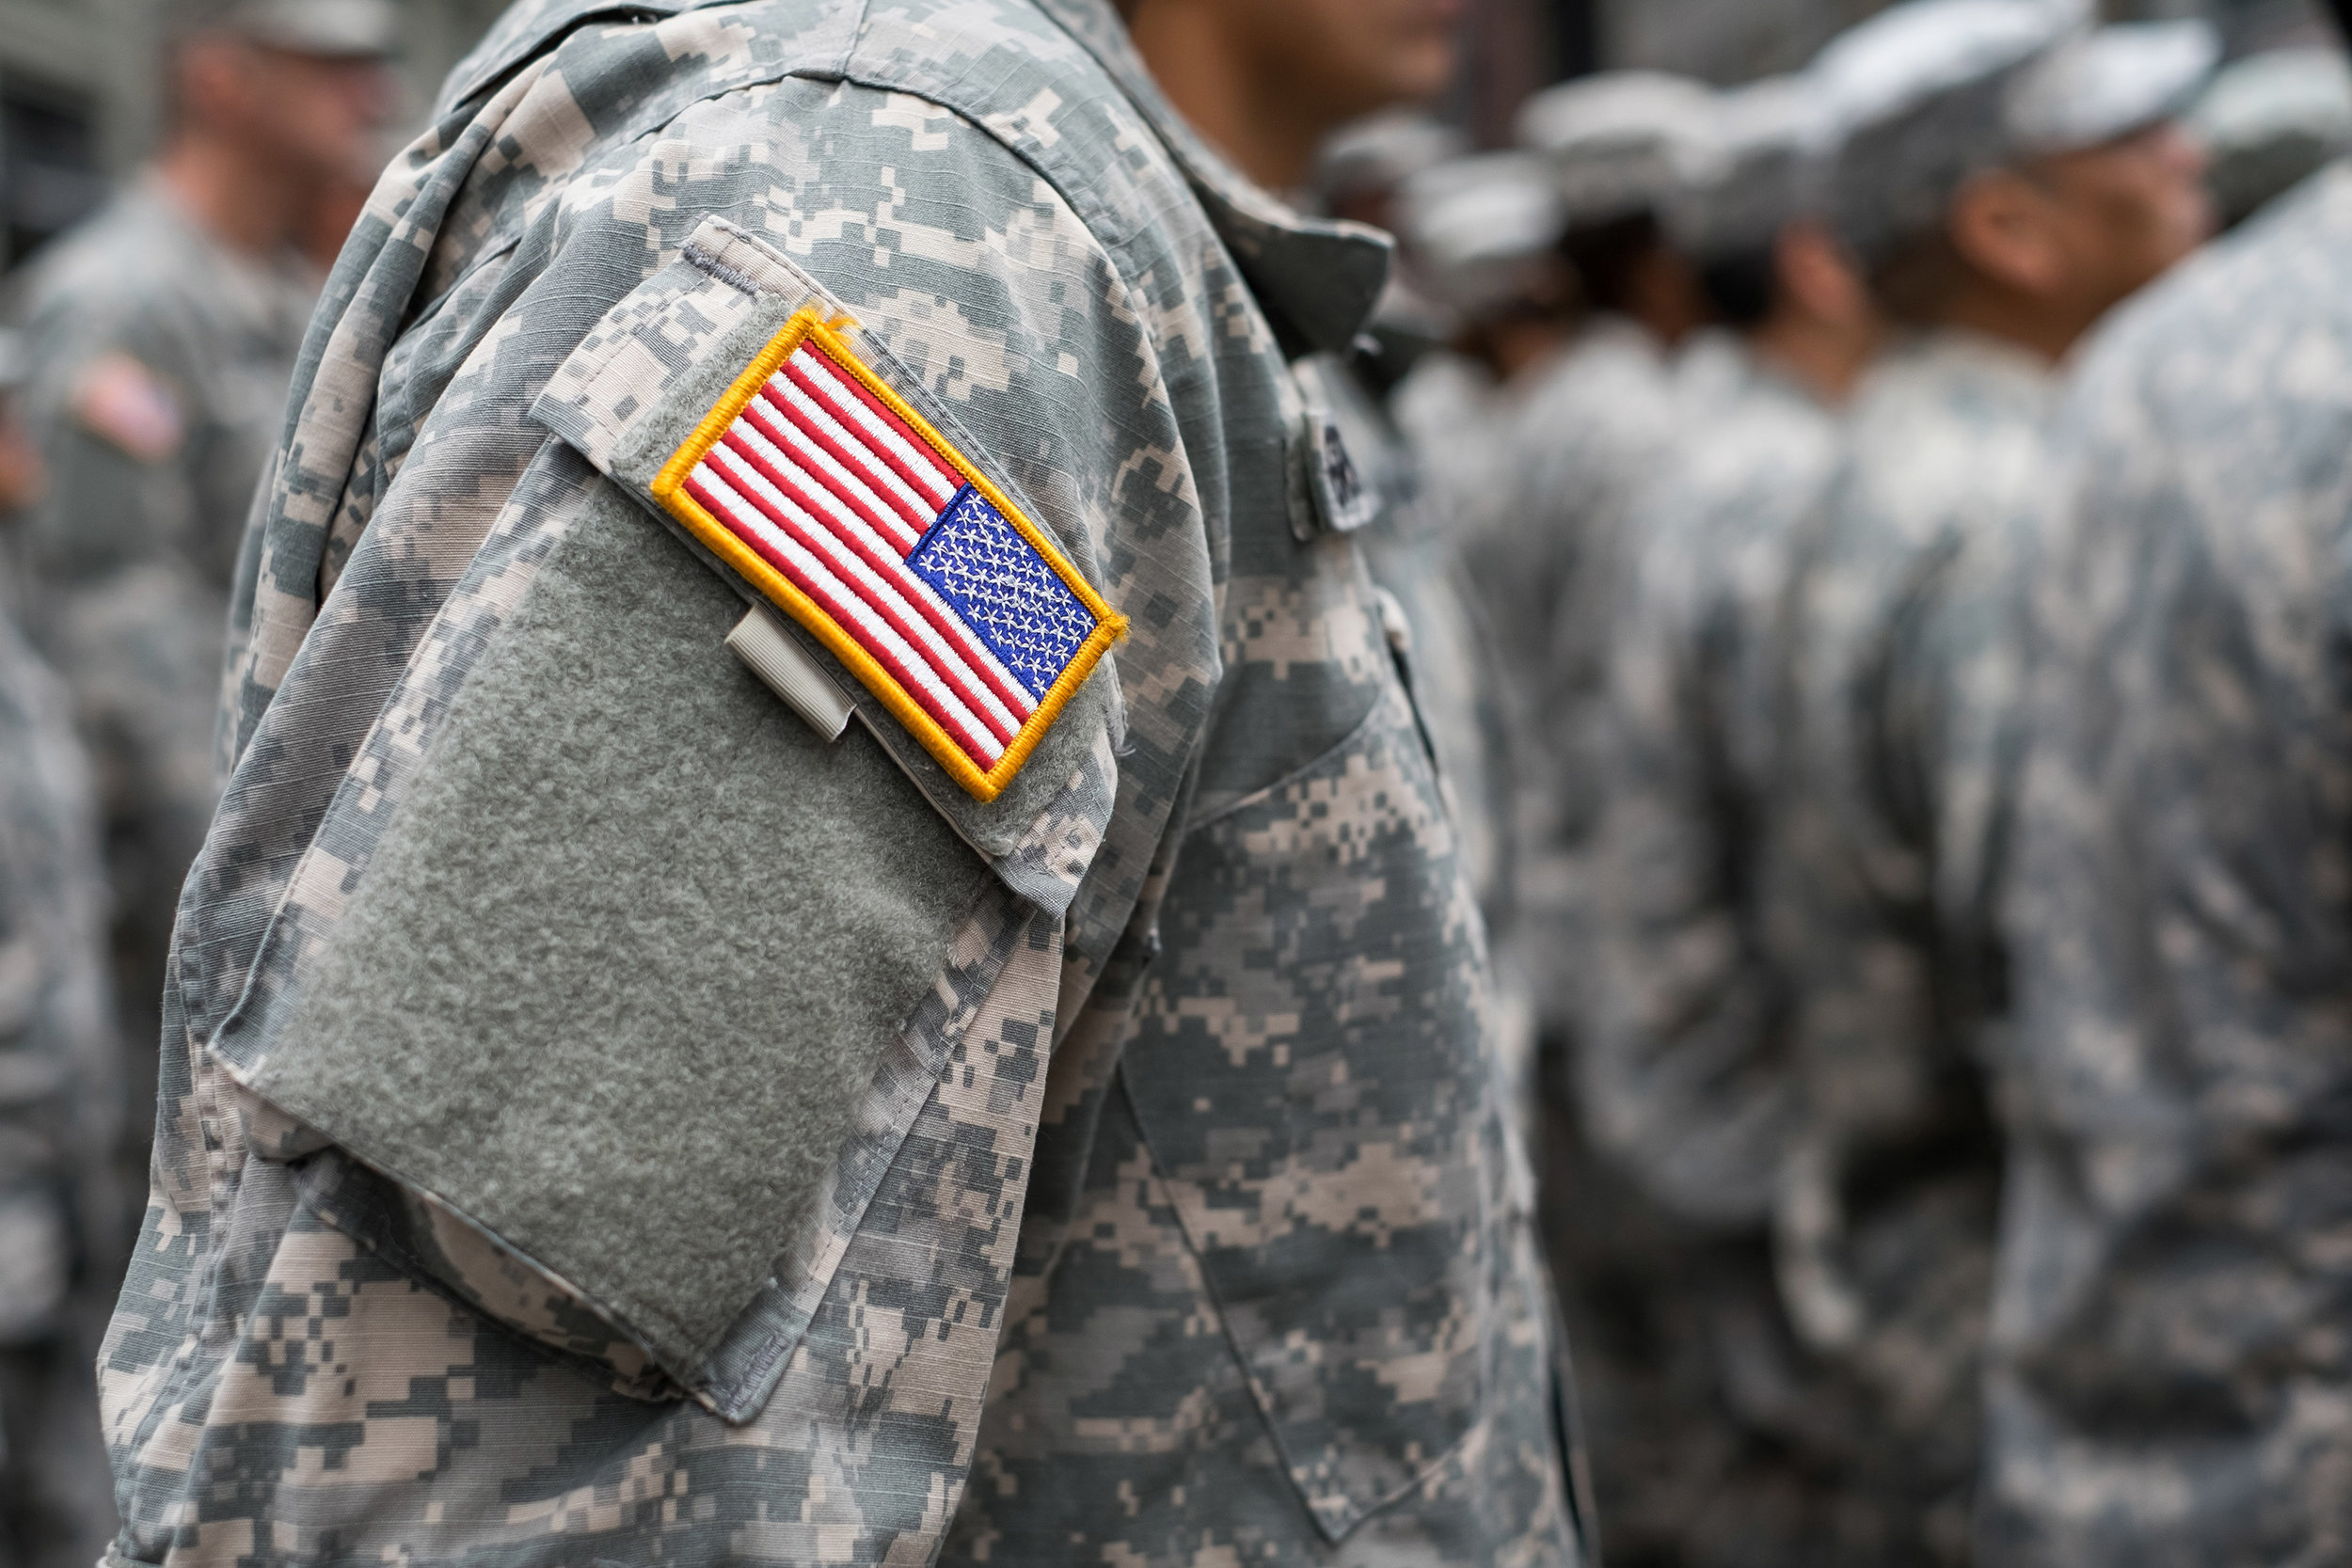 Uniforms - • Police w/ creases: $3.00• Armed Forces w/creases: $3.00• School Sports: $3.00